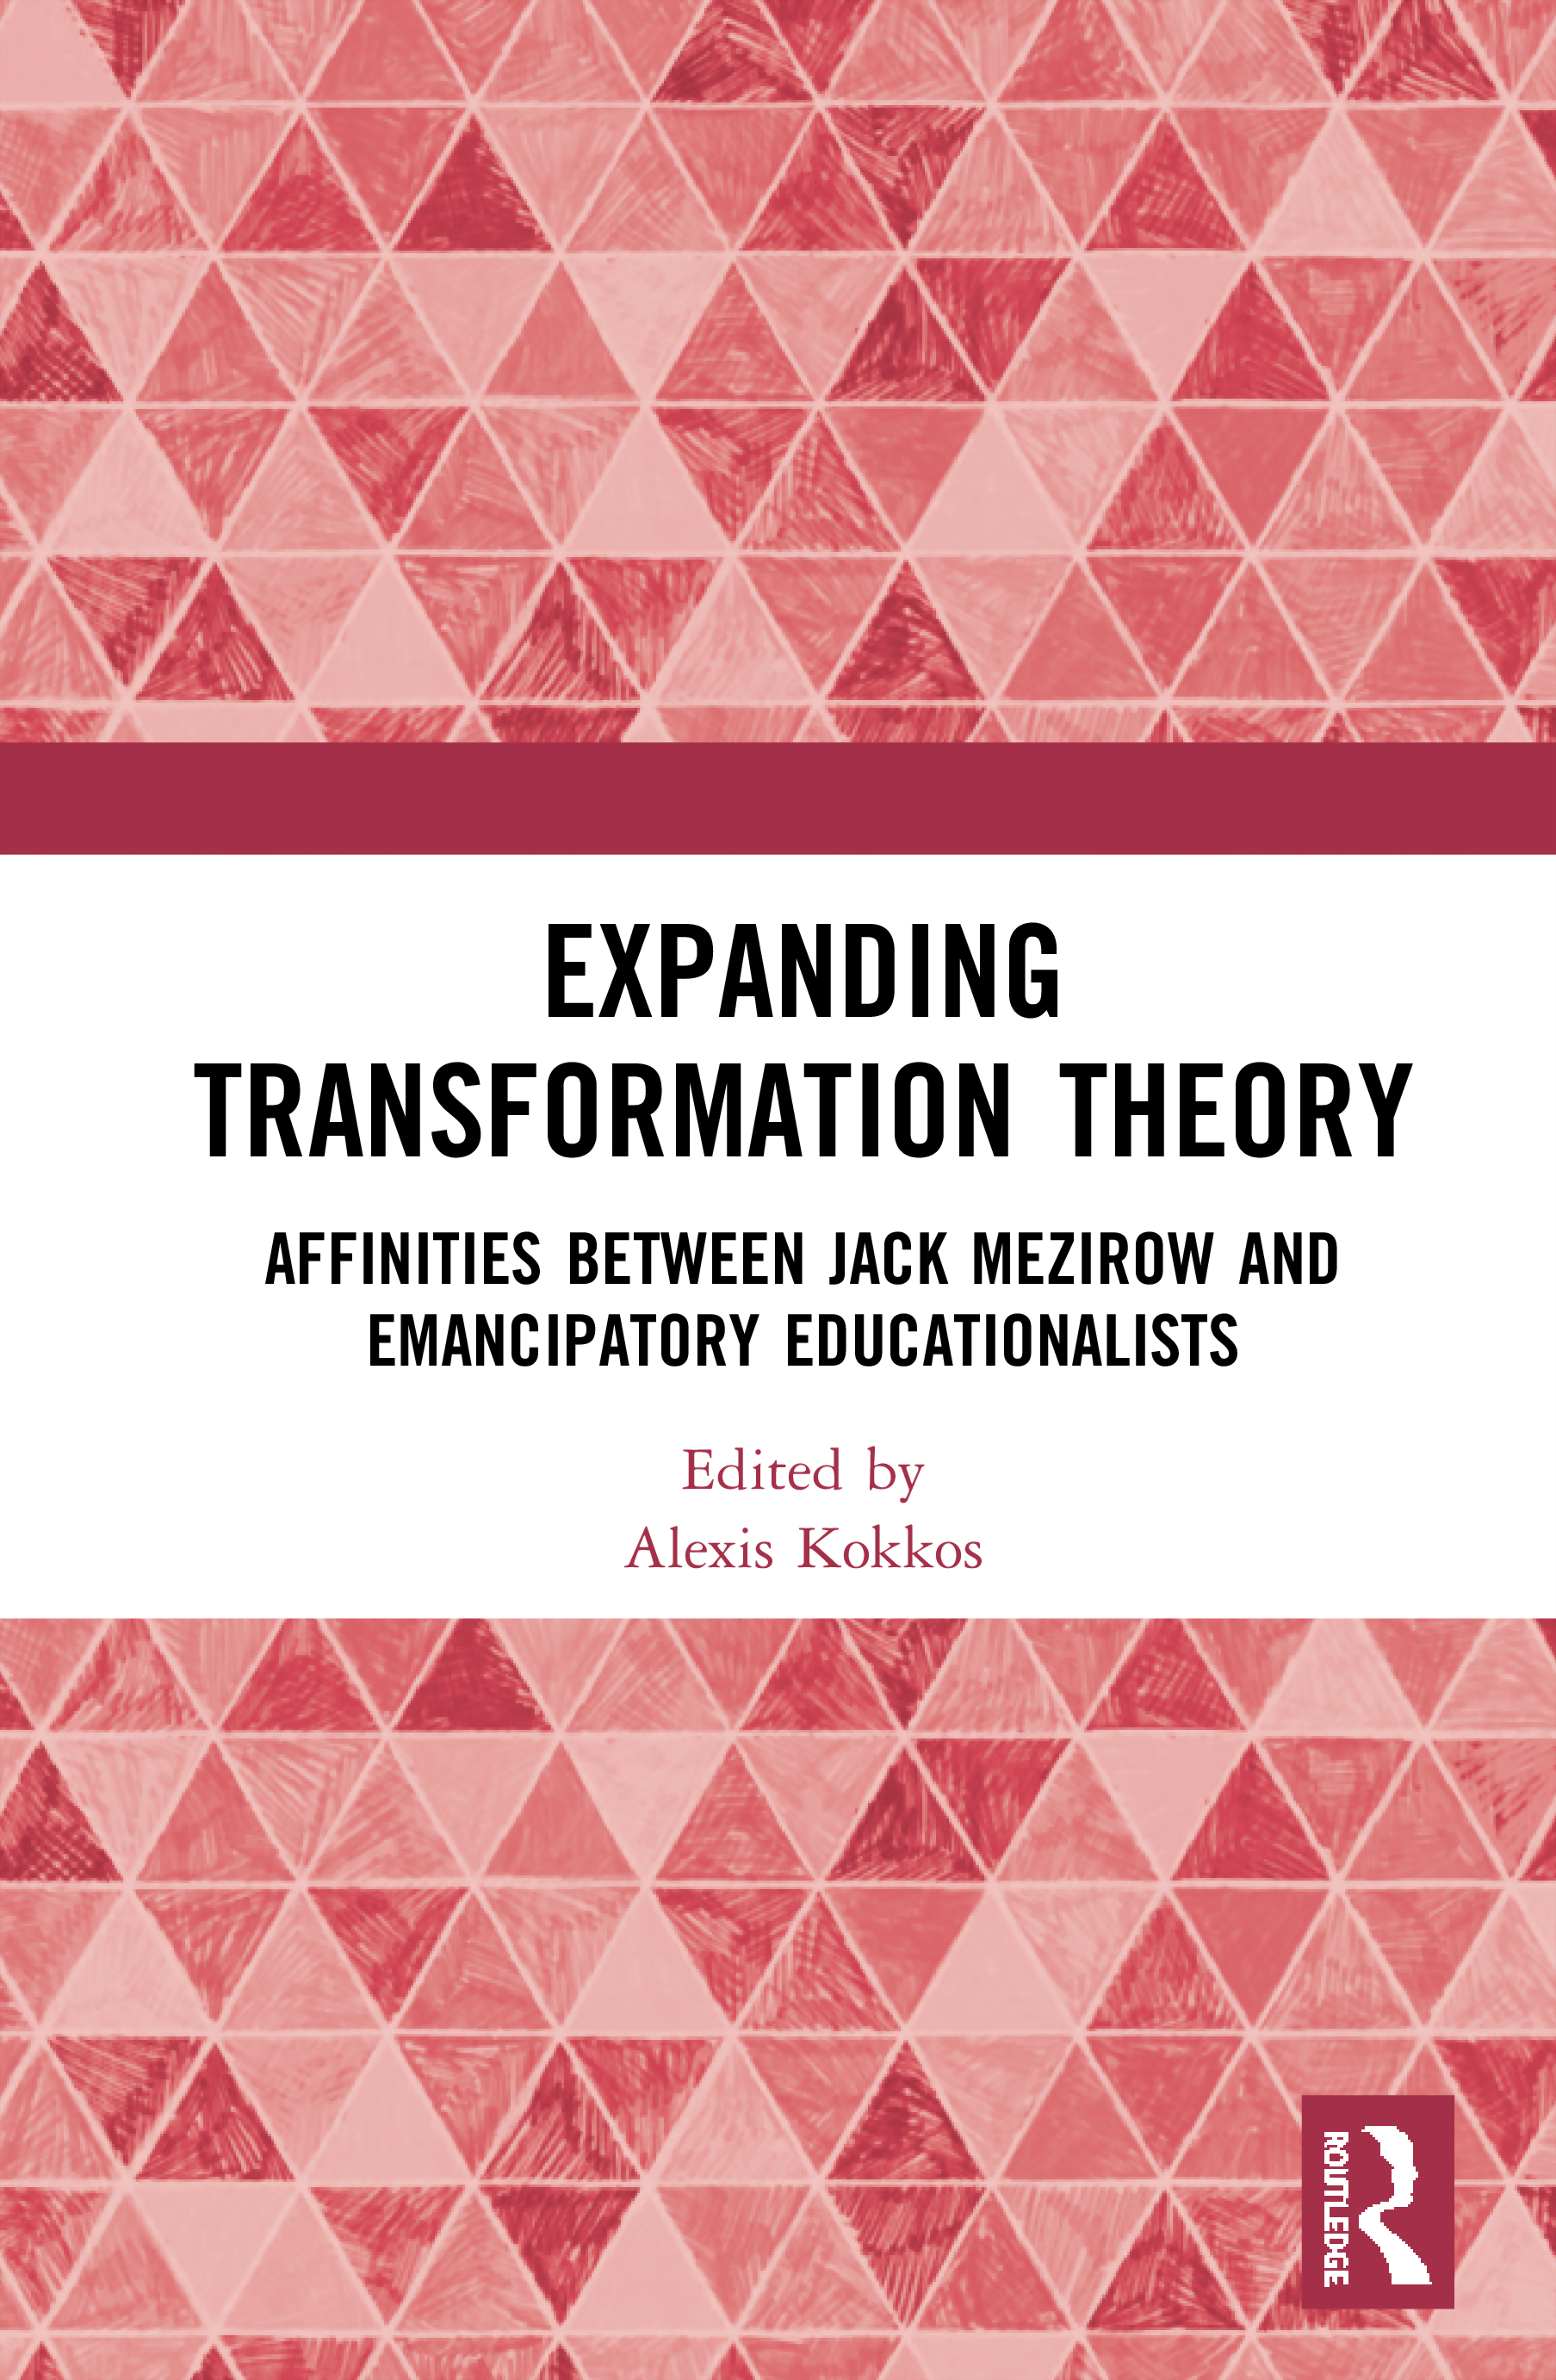 Expanding Transformation Theory: Affinities between Jack Mezirow and Emancipatory Educationalists, 1st Edition (Hardback) book cover